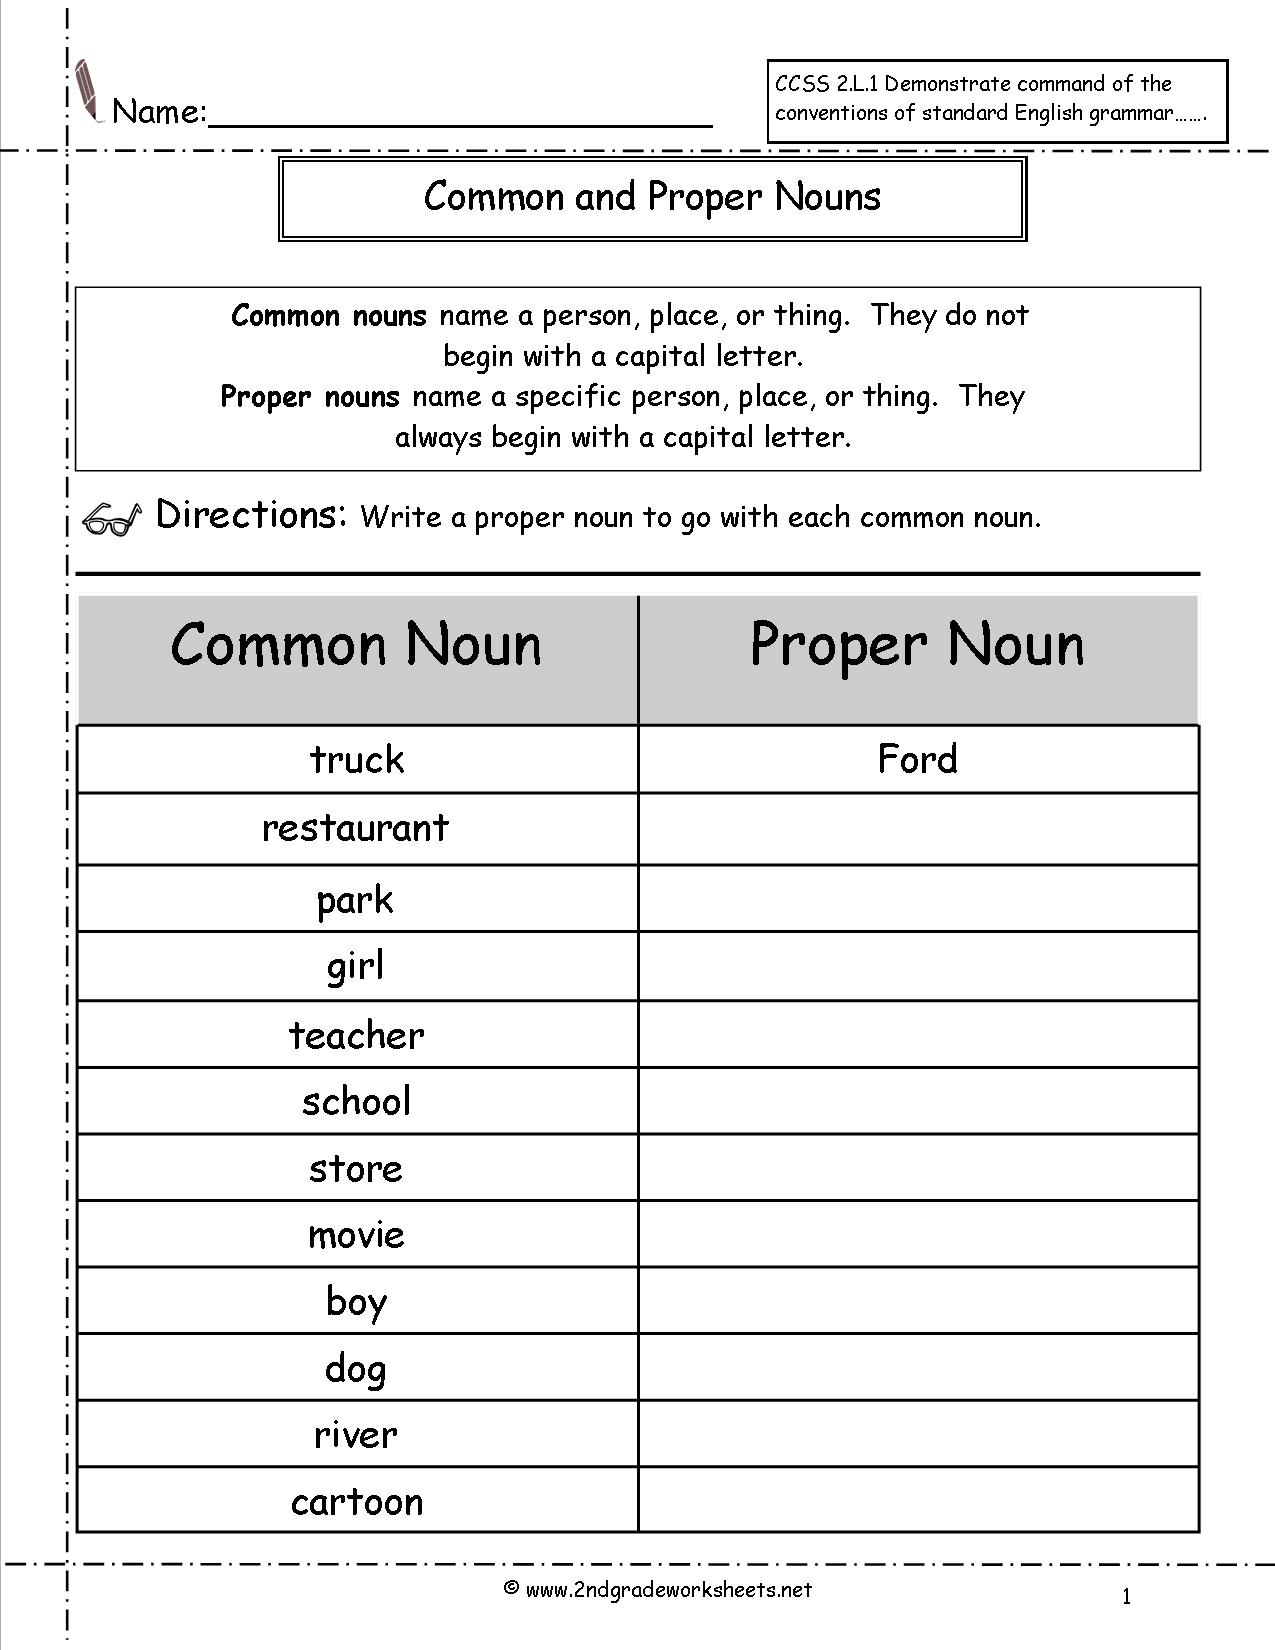 18 Best Images Of Worksheets Printable Kindergarten Common Core